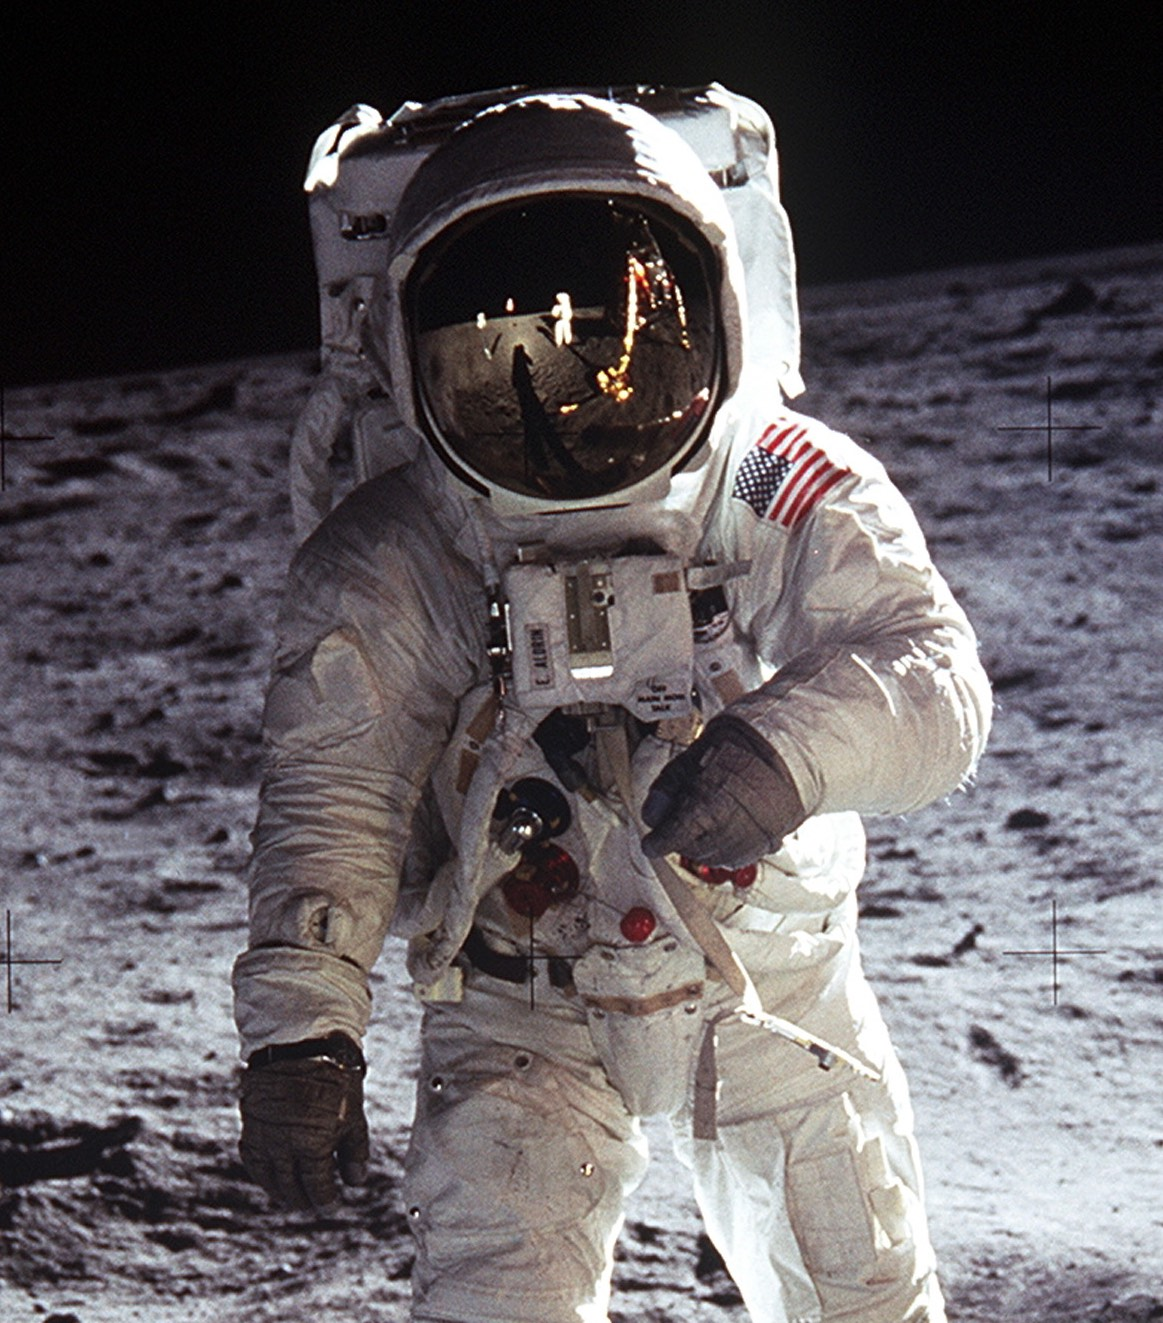 apollo 11 moon landing hoax - photo #6